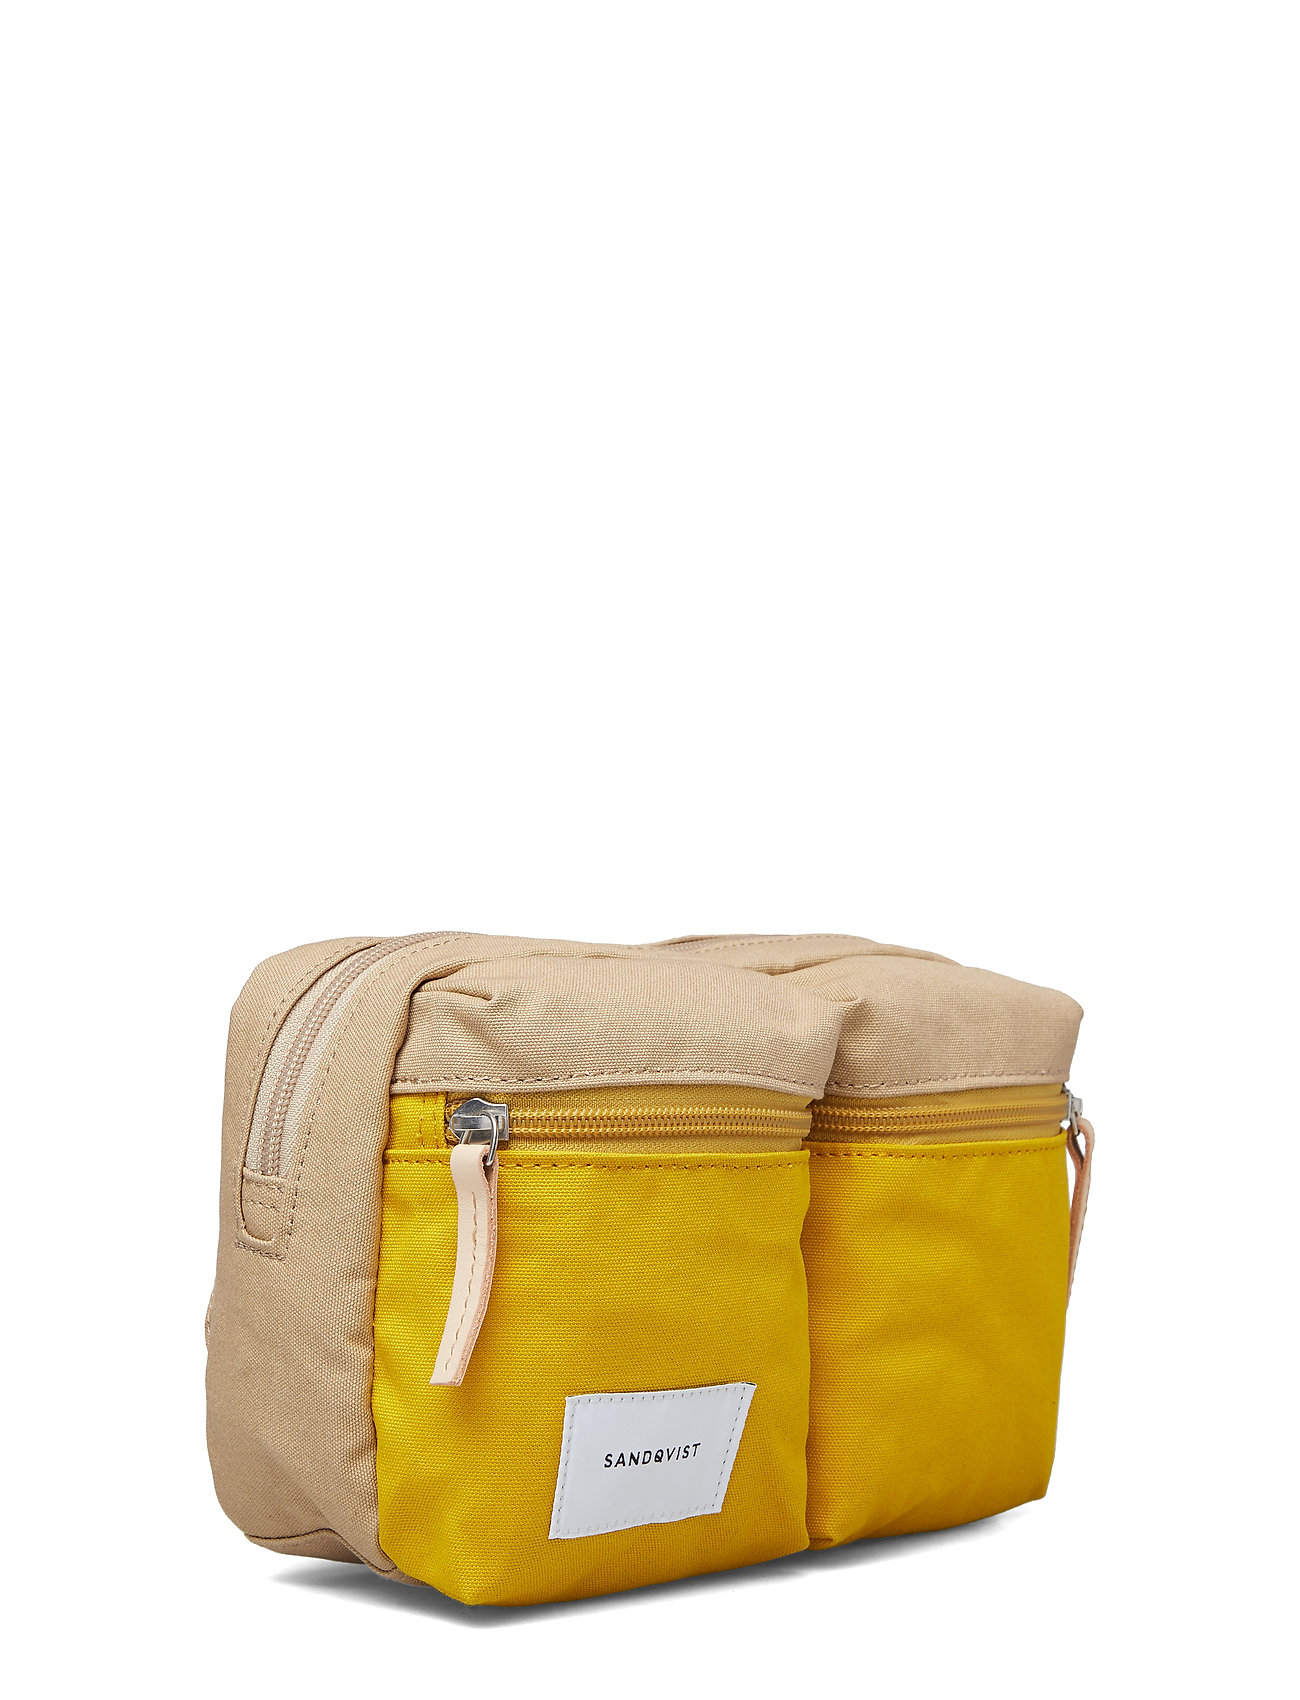 With Natural LeatherSandqvist With Paulmulti Natural Paulmulti LeatherSandqvist YellowBeige Paulmulti YellowBeige With YellowBeige bvY76gfy